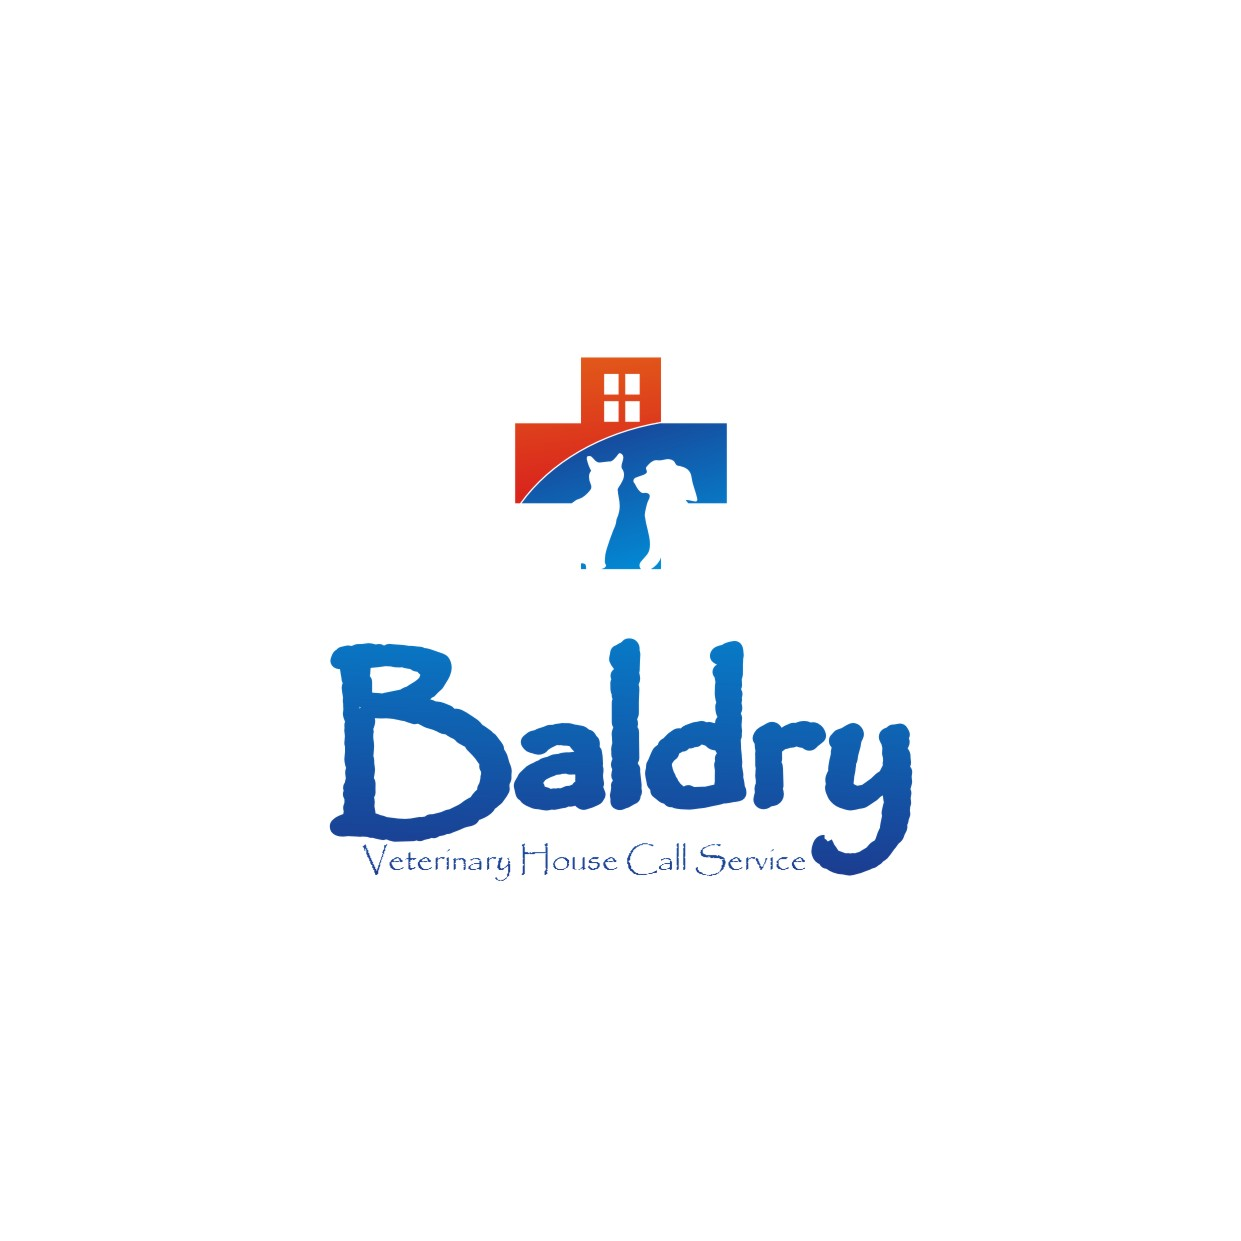 Logo Design by jalal - Entry No. 44 in the Logo Design Contest Captivating Logo Design for Baldry Veterinary House Call Service.